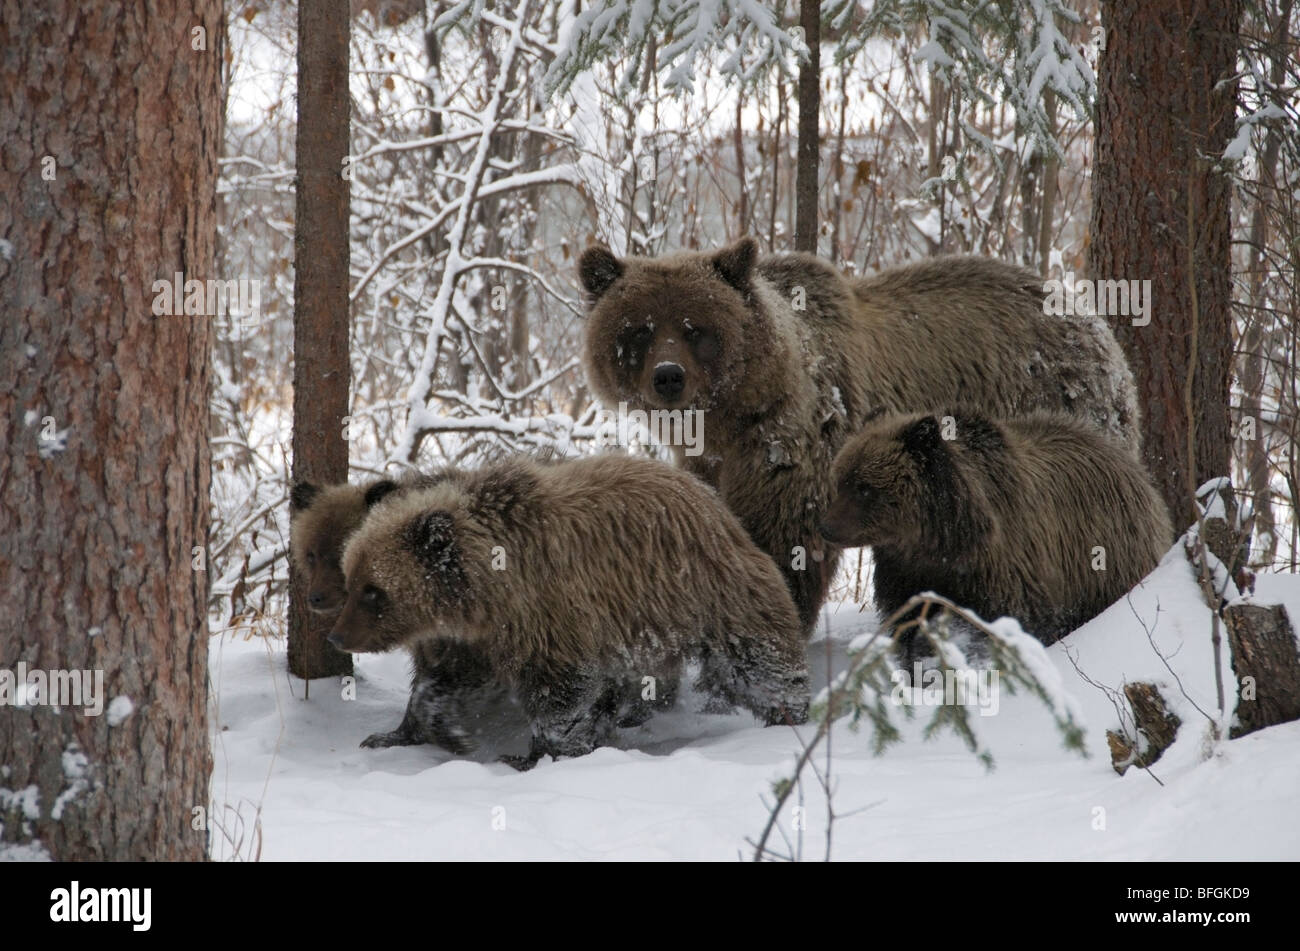 Grizzly Bear (Ursus arctos) sow and 1st year cubs walking through snowy forest. Fishing Branch River Ni'iinlii - Stock Image